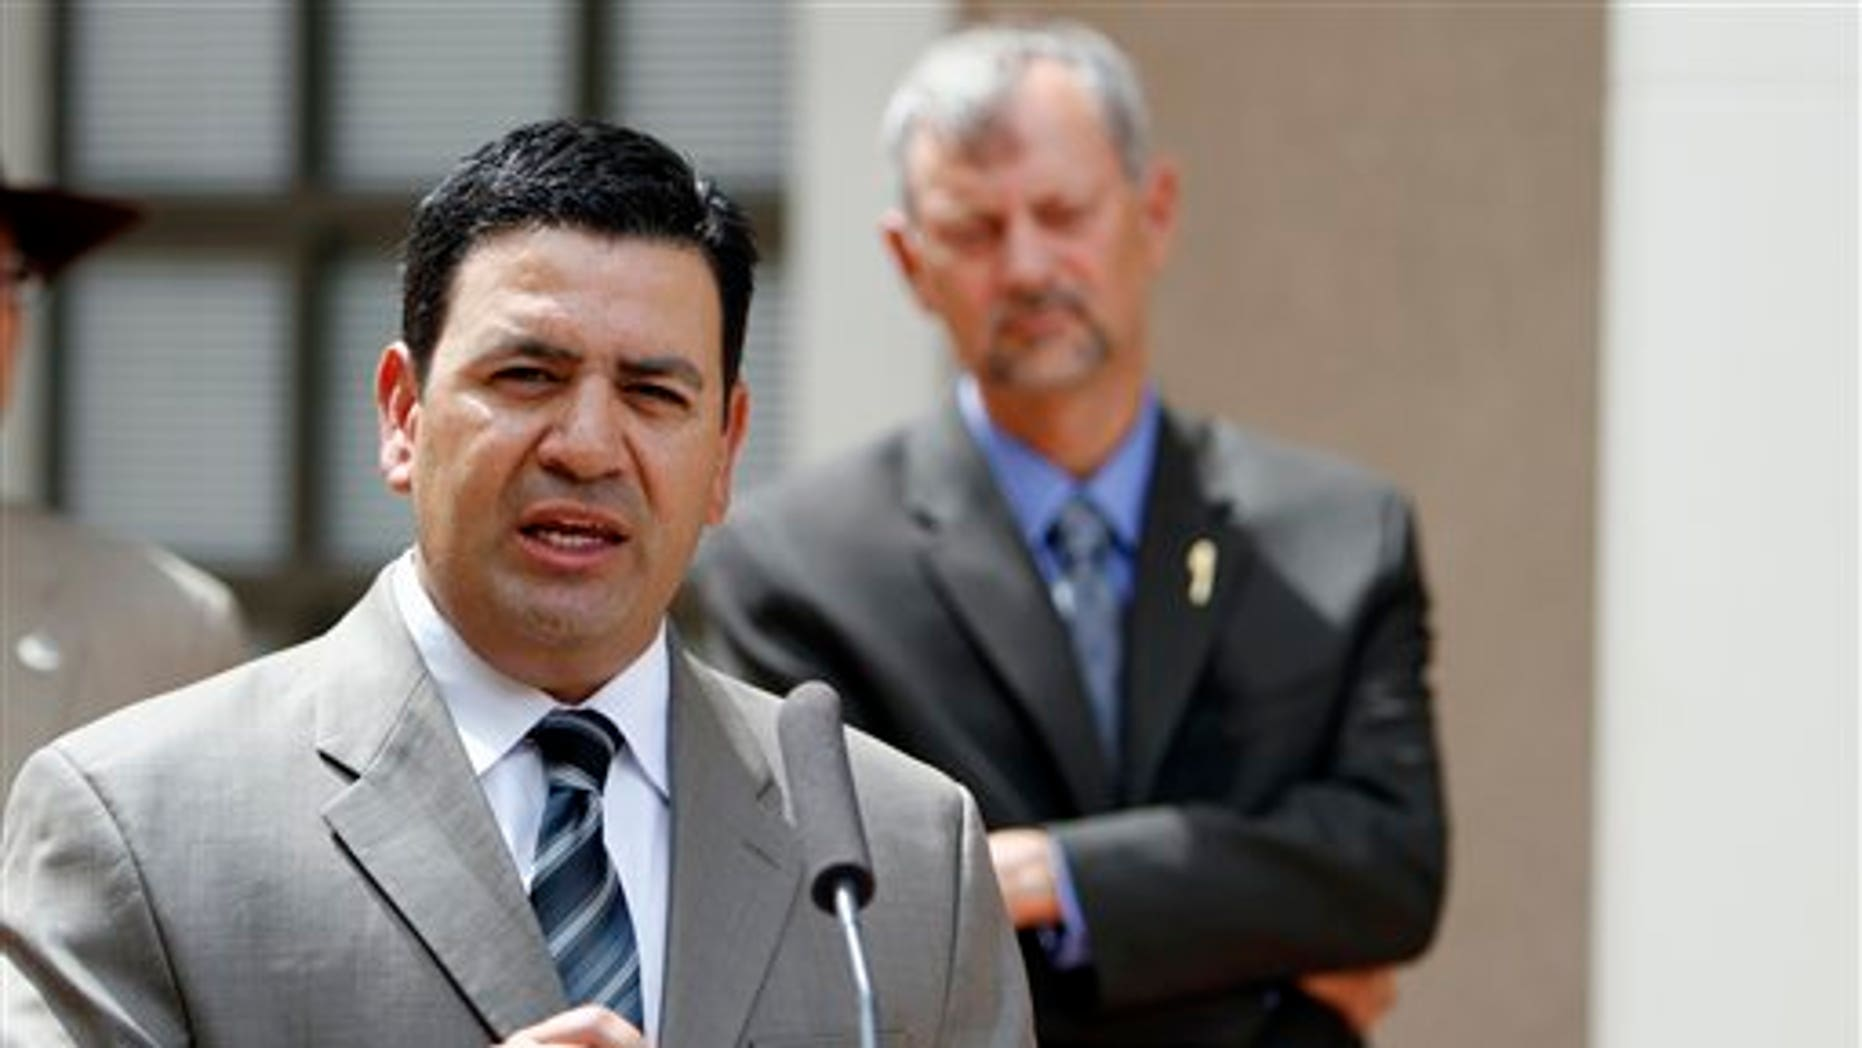 August 24: David Urias, with Freedman Boyd Hollander Goldberg Ives & Duncan law firm, speaks during a news conference outside the State Capitol in Santa Fe, N.M. Four state legislators and a Silver City woman asked a judge Wednesday to stop Gov. Susana Martinez's administration from trying to verify whether immigrants who received a driver's license in New Mexico still live in the state.